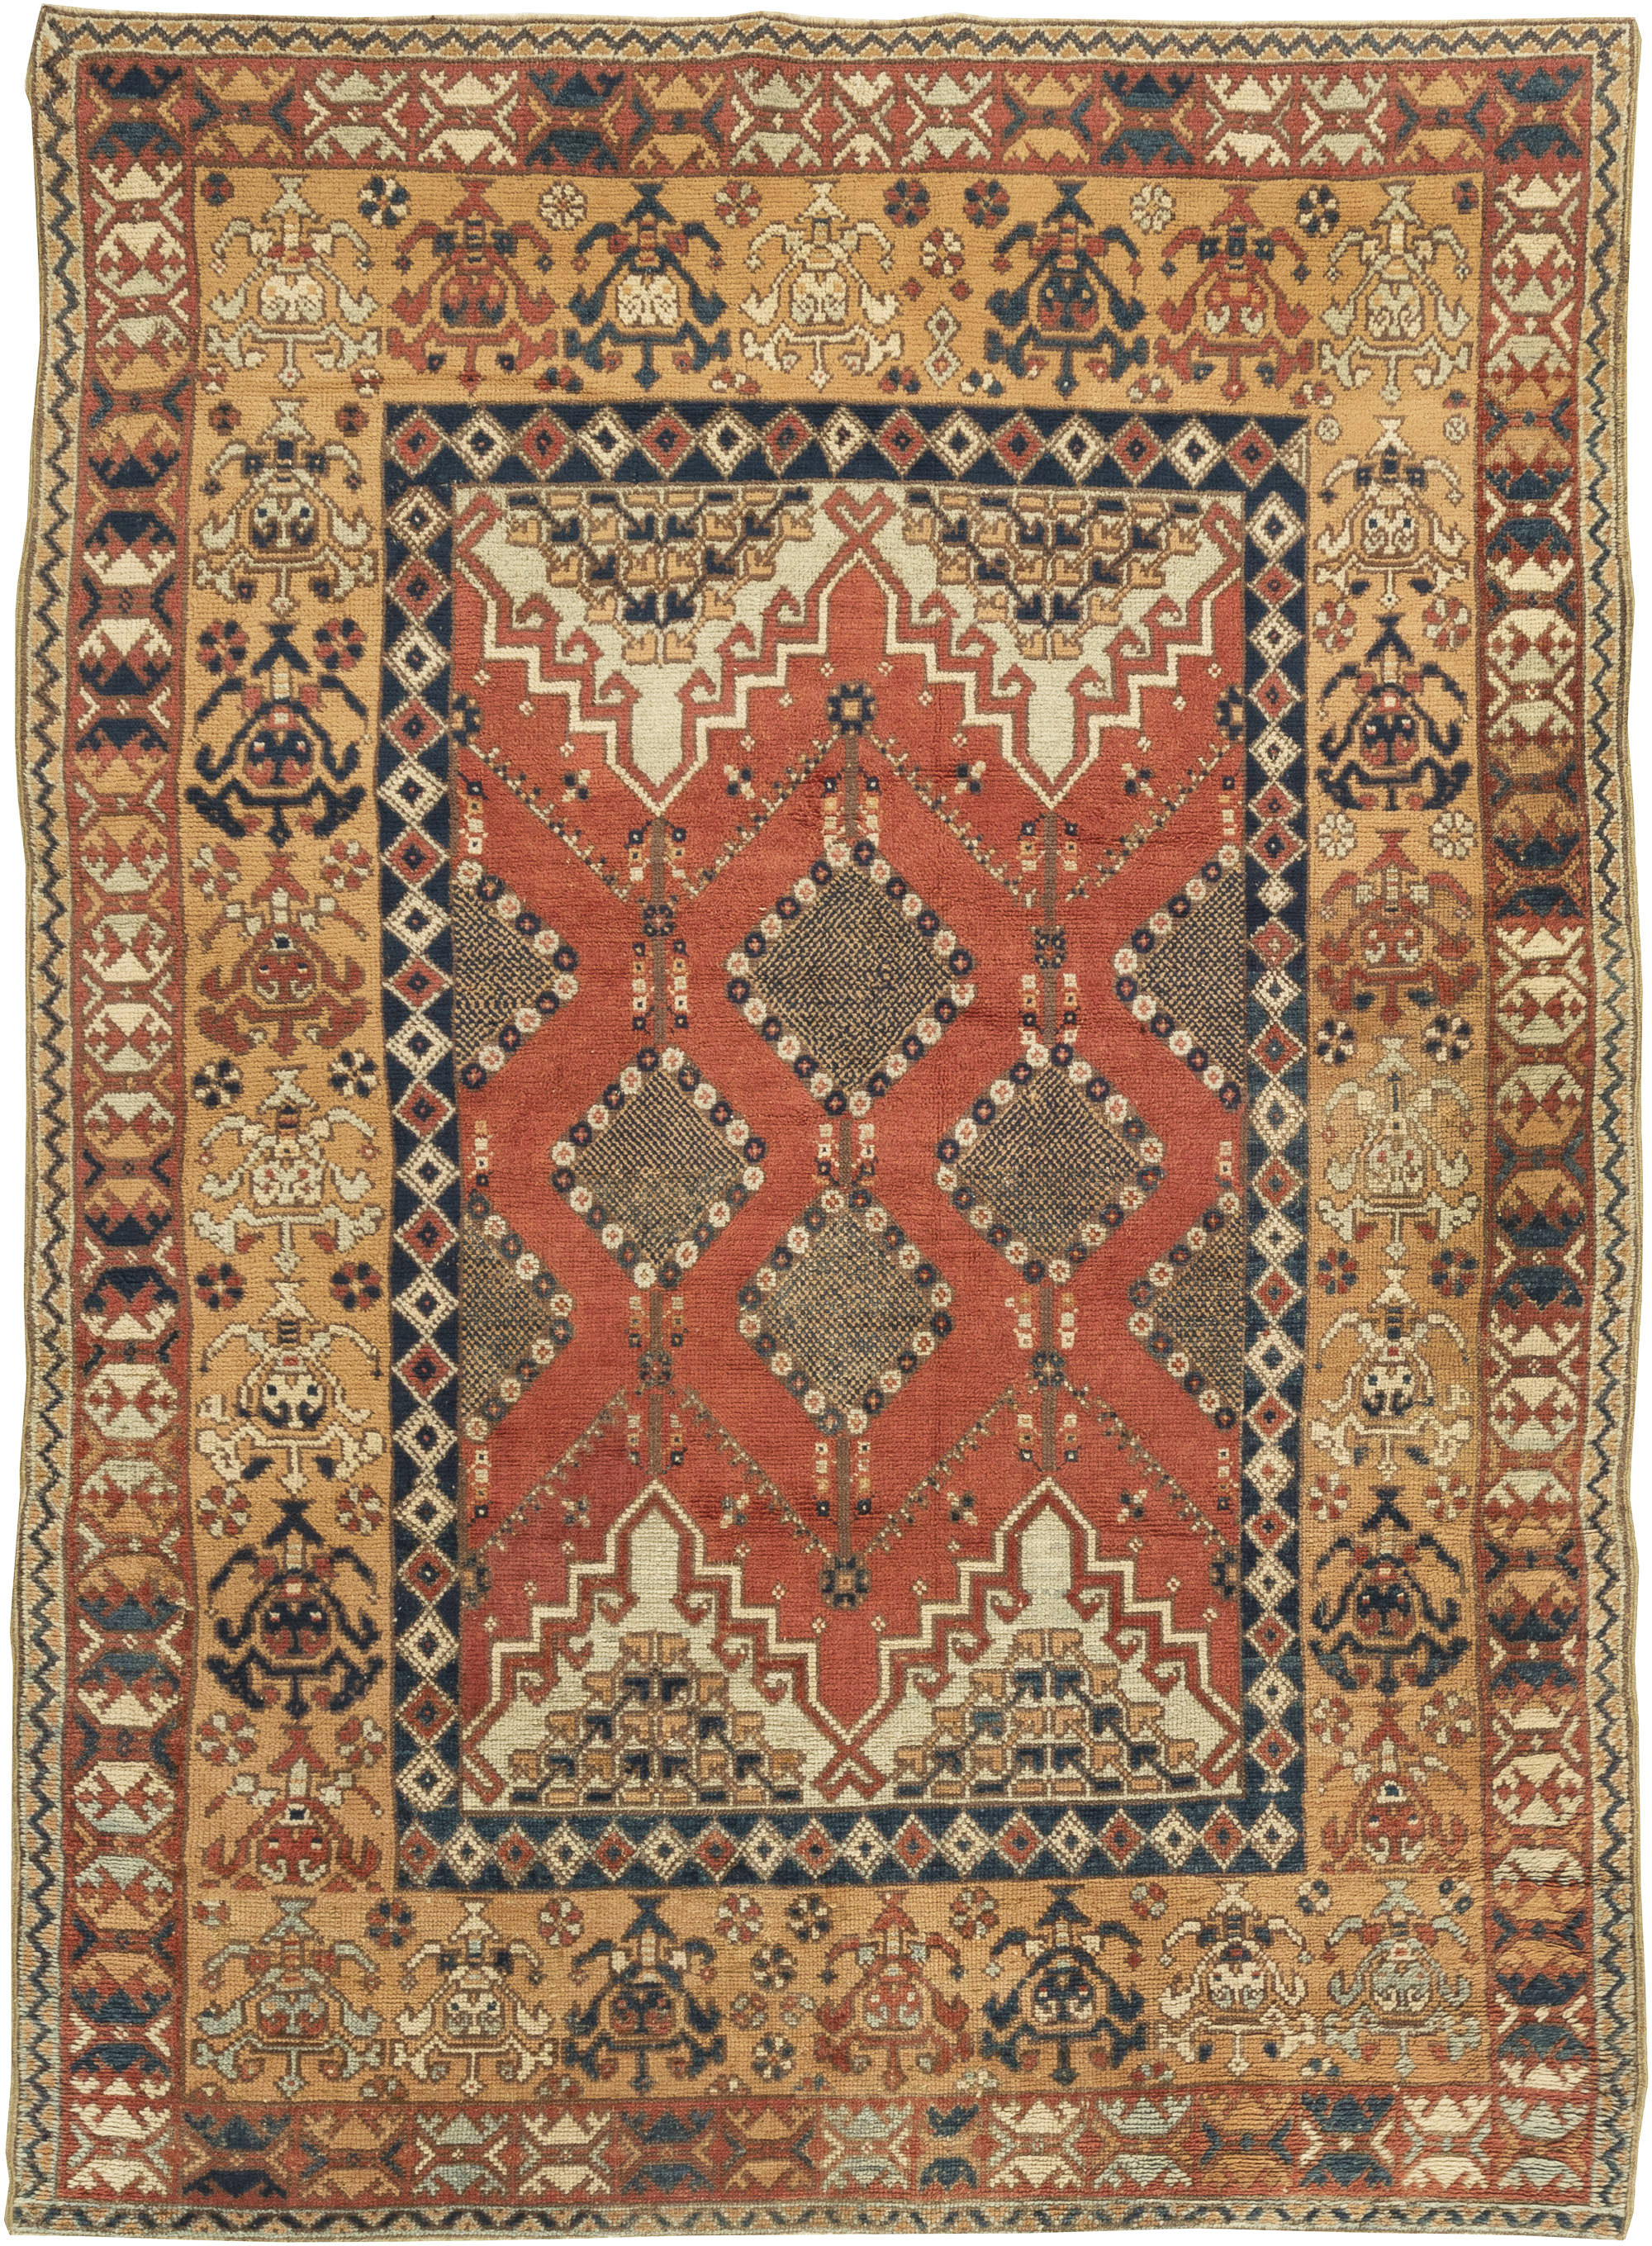 Vintage Moroccan Rug Bb6353 By Dlb